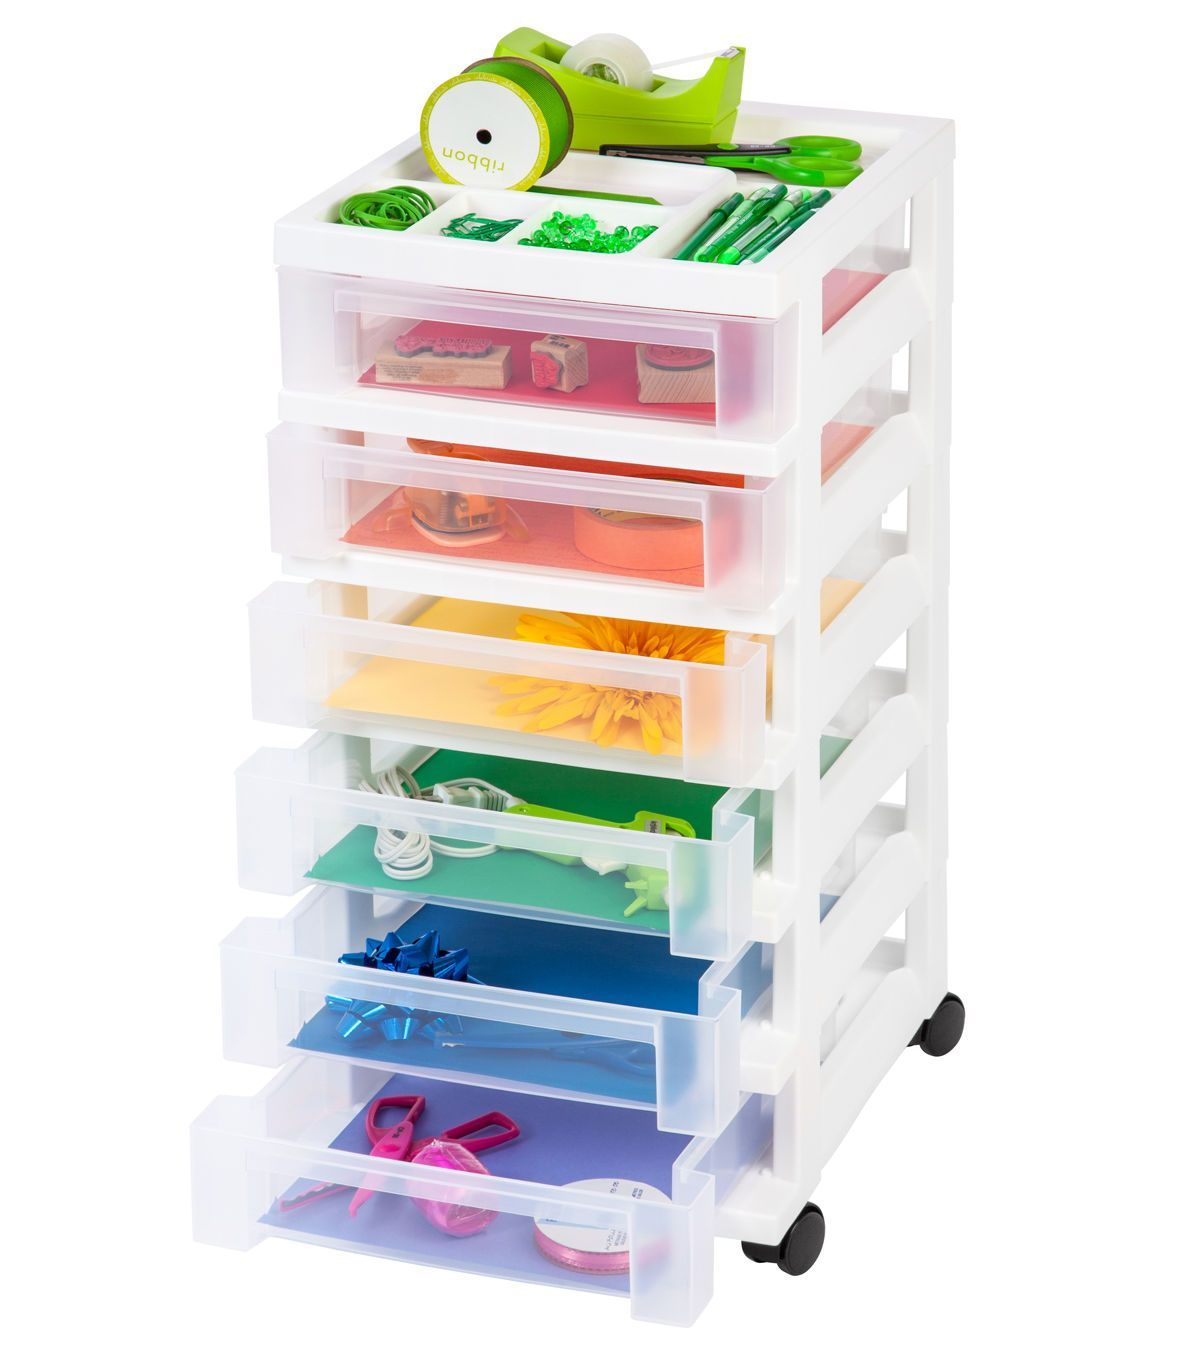 Good Iris IRIS 6 Drawer Cart Home Decor Holiday Storage  Ea4c534d3a2f8372152f2a5d6cae2888 240590805078400876 6 Drawer Plastic  Storage 6 Drawer Plastic Storage